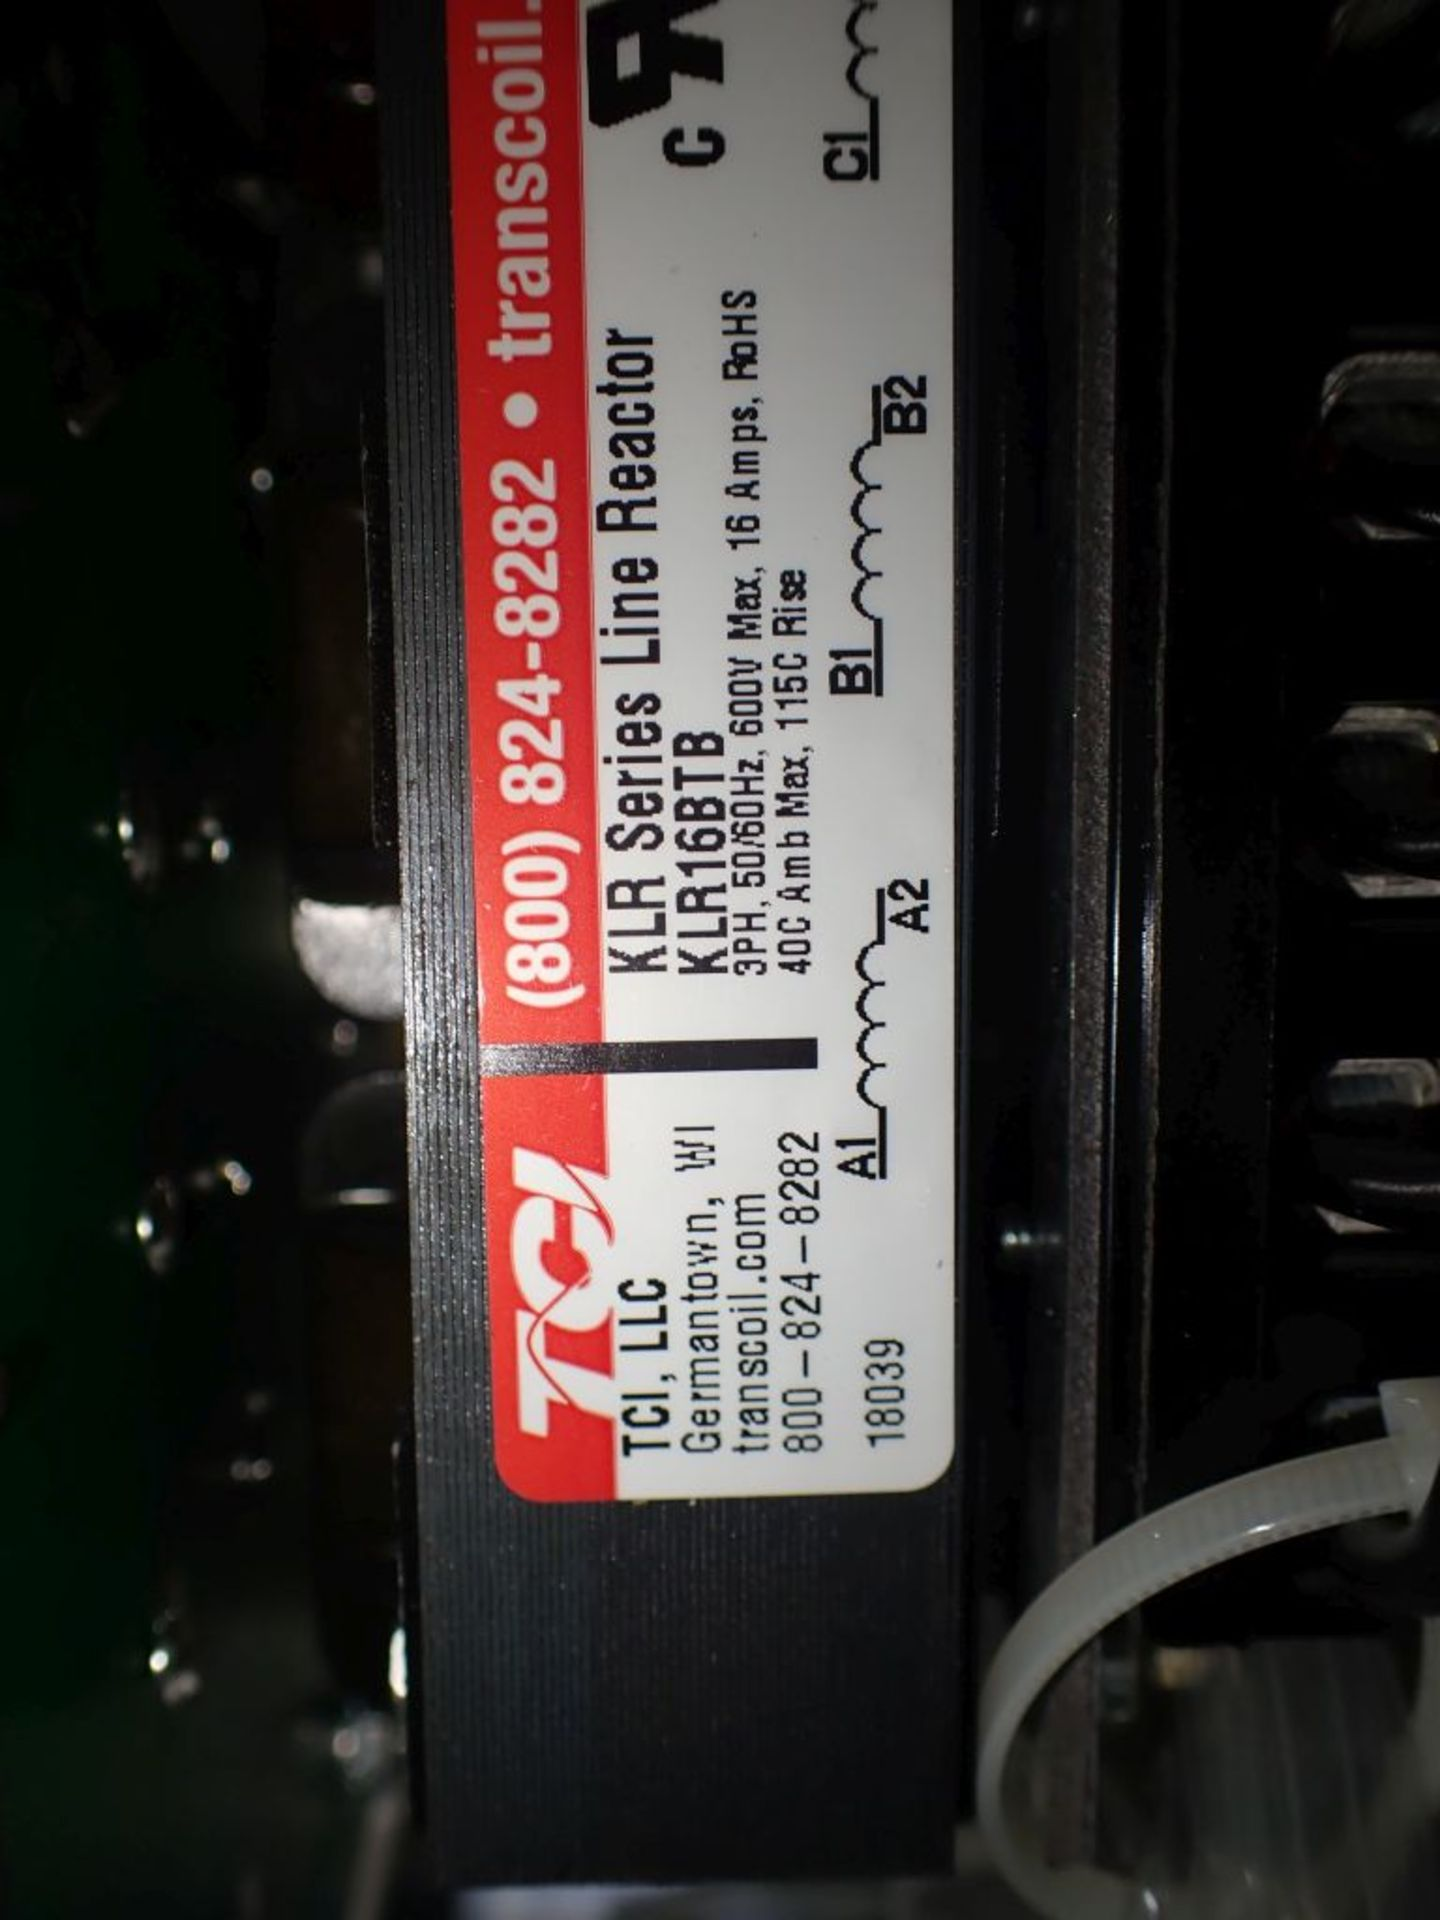 Eaton Freedom 2100 Series Motor Control Center | (2) F206-7A-10HP; (3) F206-15A-10HP; (1) FDRB-100A; - Image 30 of 87